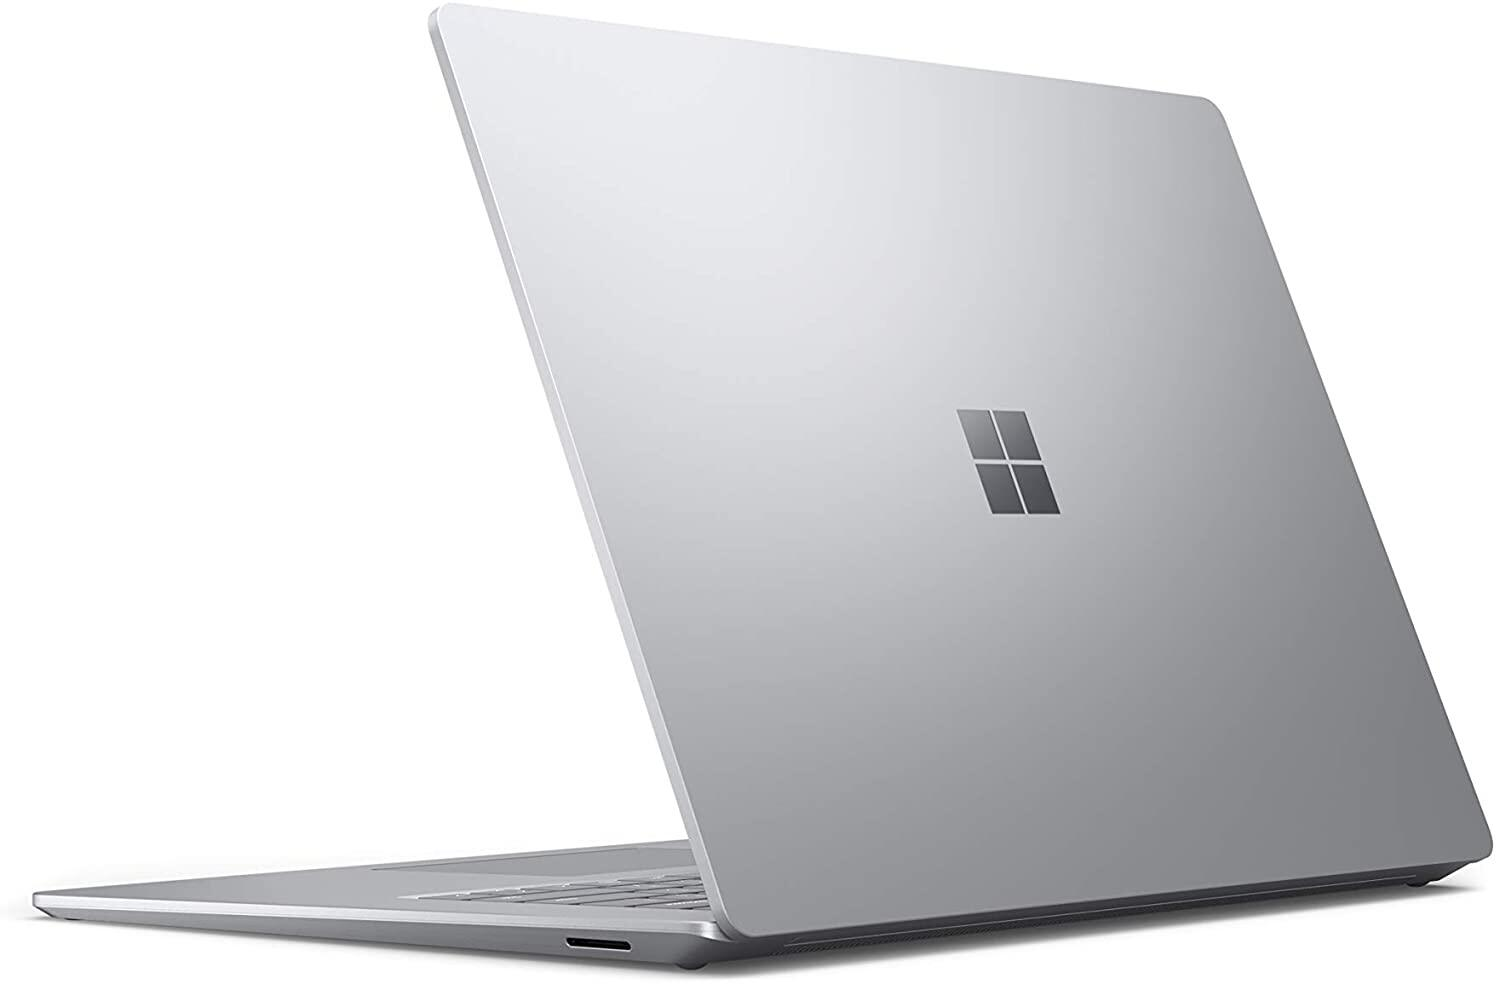 Microsoft Surface Laptop 3 – 15 Touch-Screen – AMD Ryzen 7 Surface Edition - 16GB Memory - 512GB Solid State Drive – Platinum Malaysia